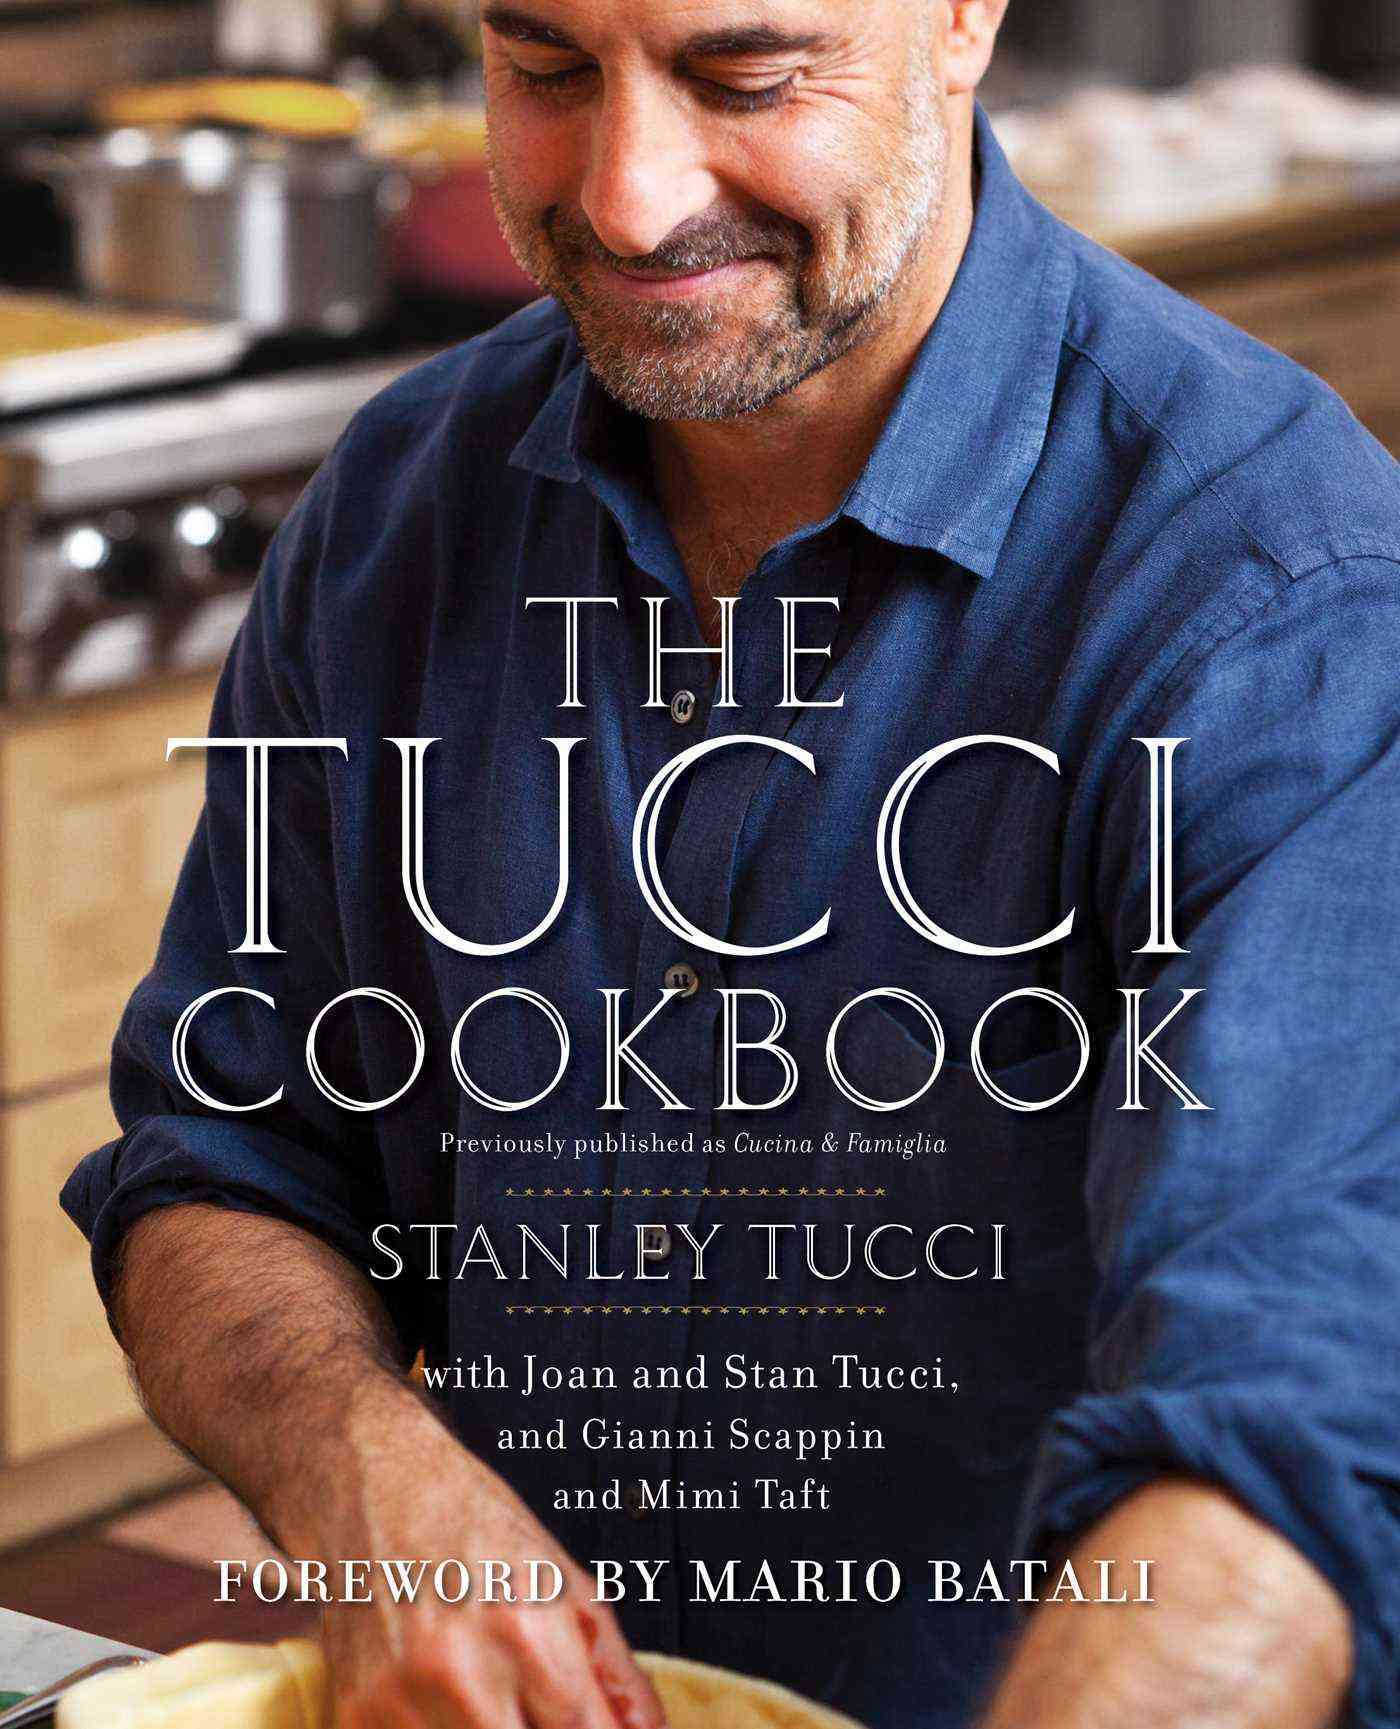 The Tucci Cookbook (Hardcover)